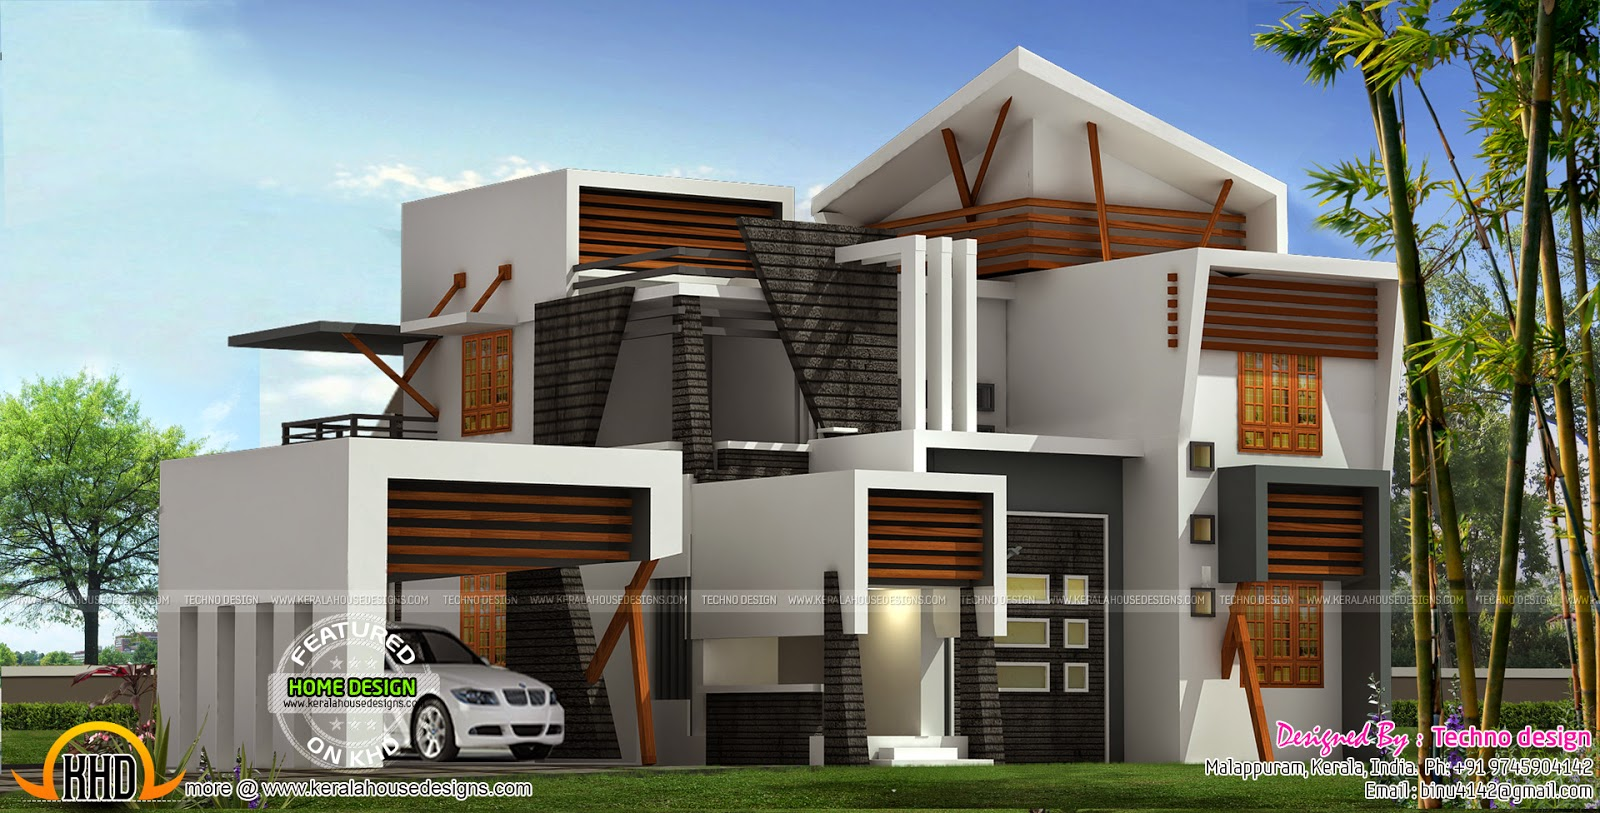 House design for 60 square meter - House Plan Modern Contemporary